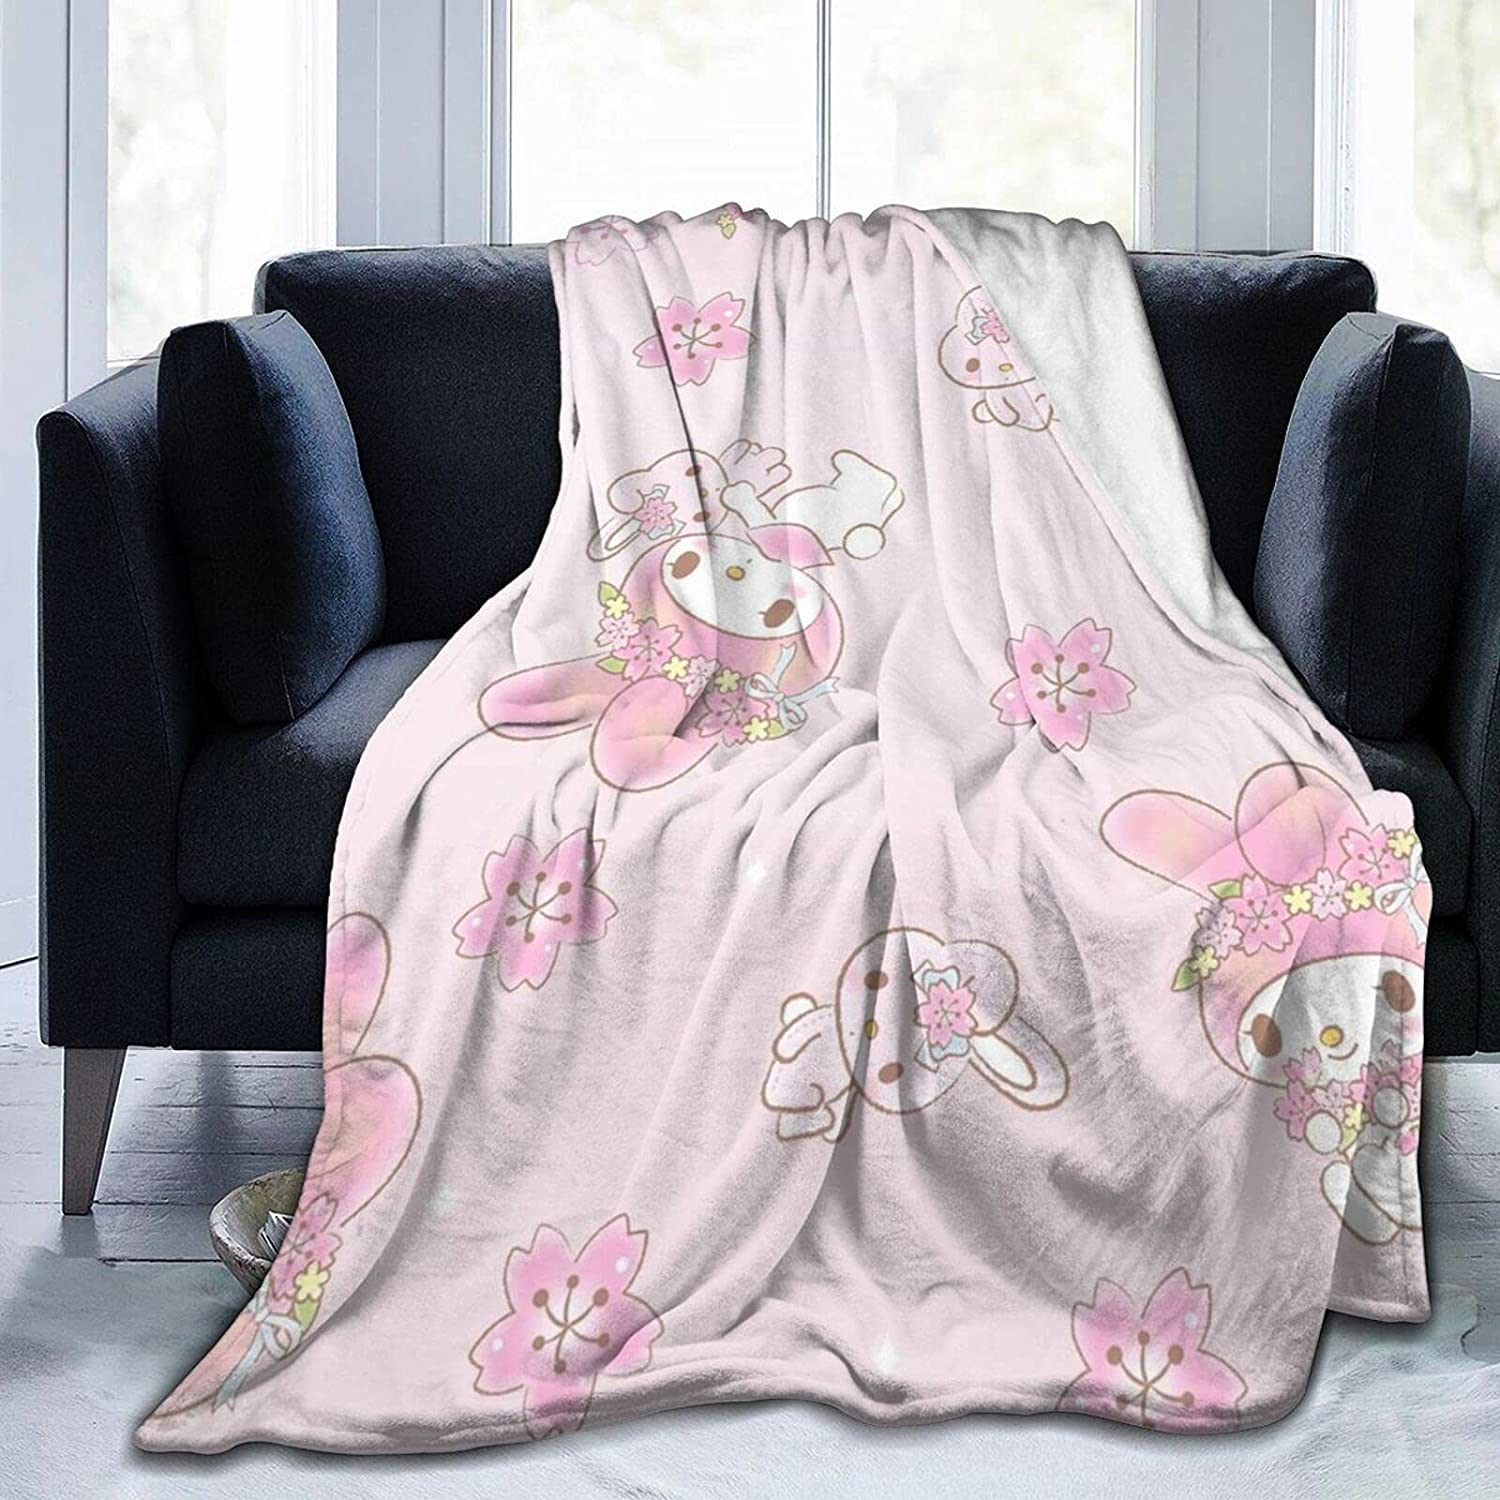 Kuromi and My Melody Blanket Comfortable Flannel online shop Ranking TOP3 B Warm Soft